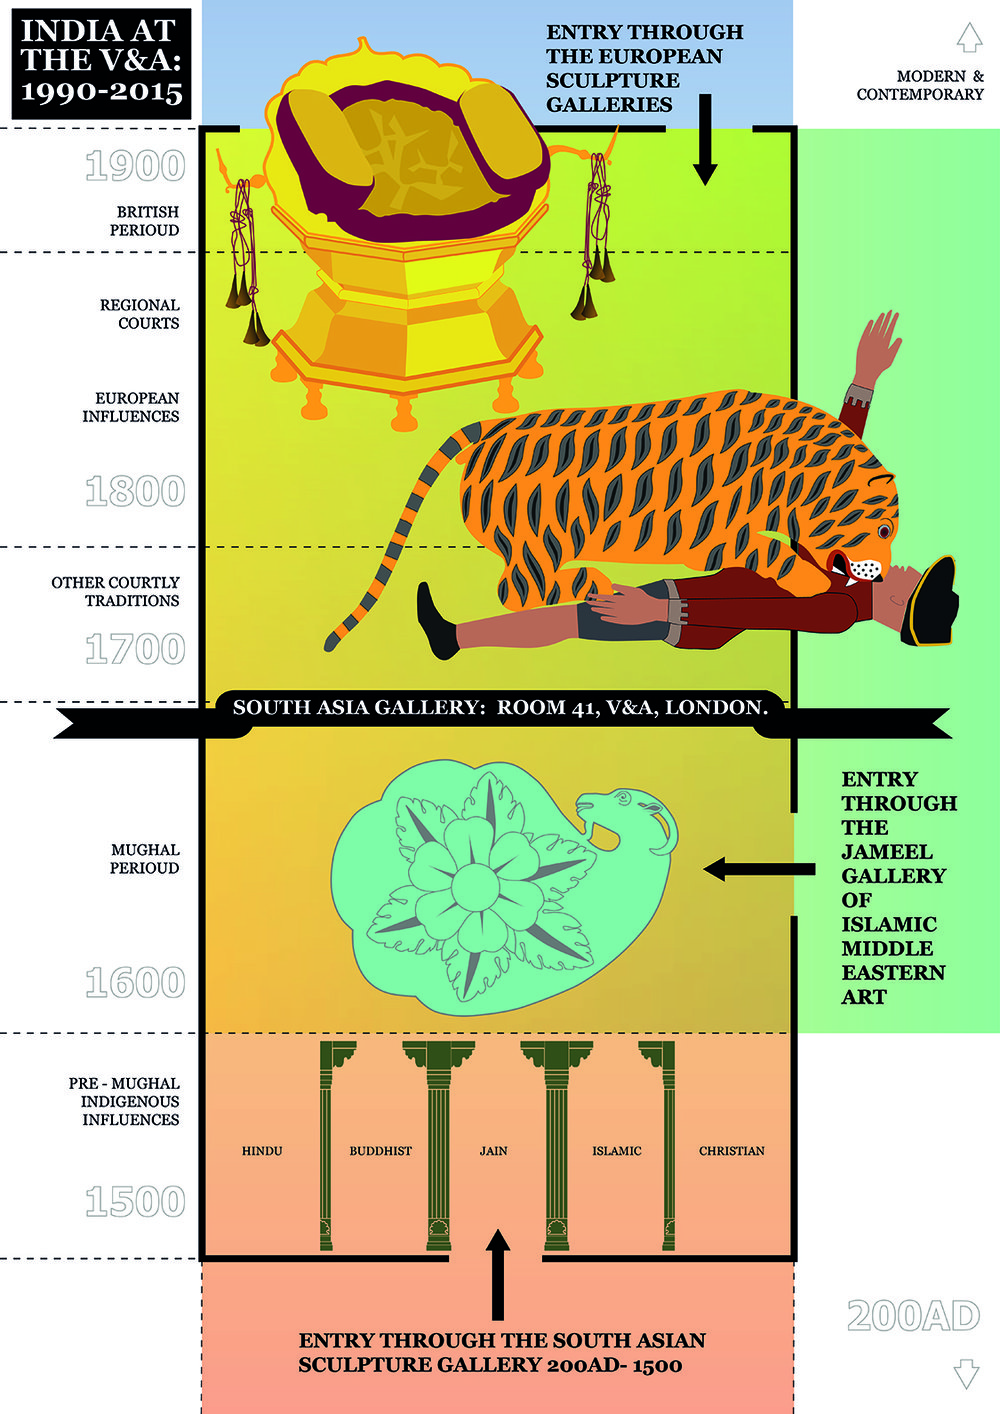 Infographic for South Asia Gallery, V&A